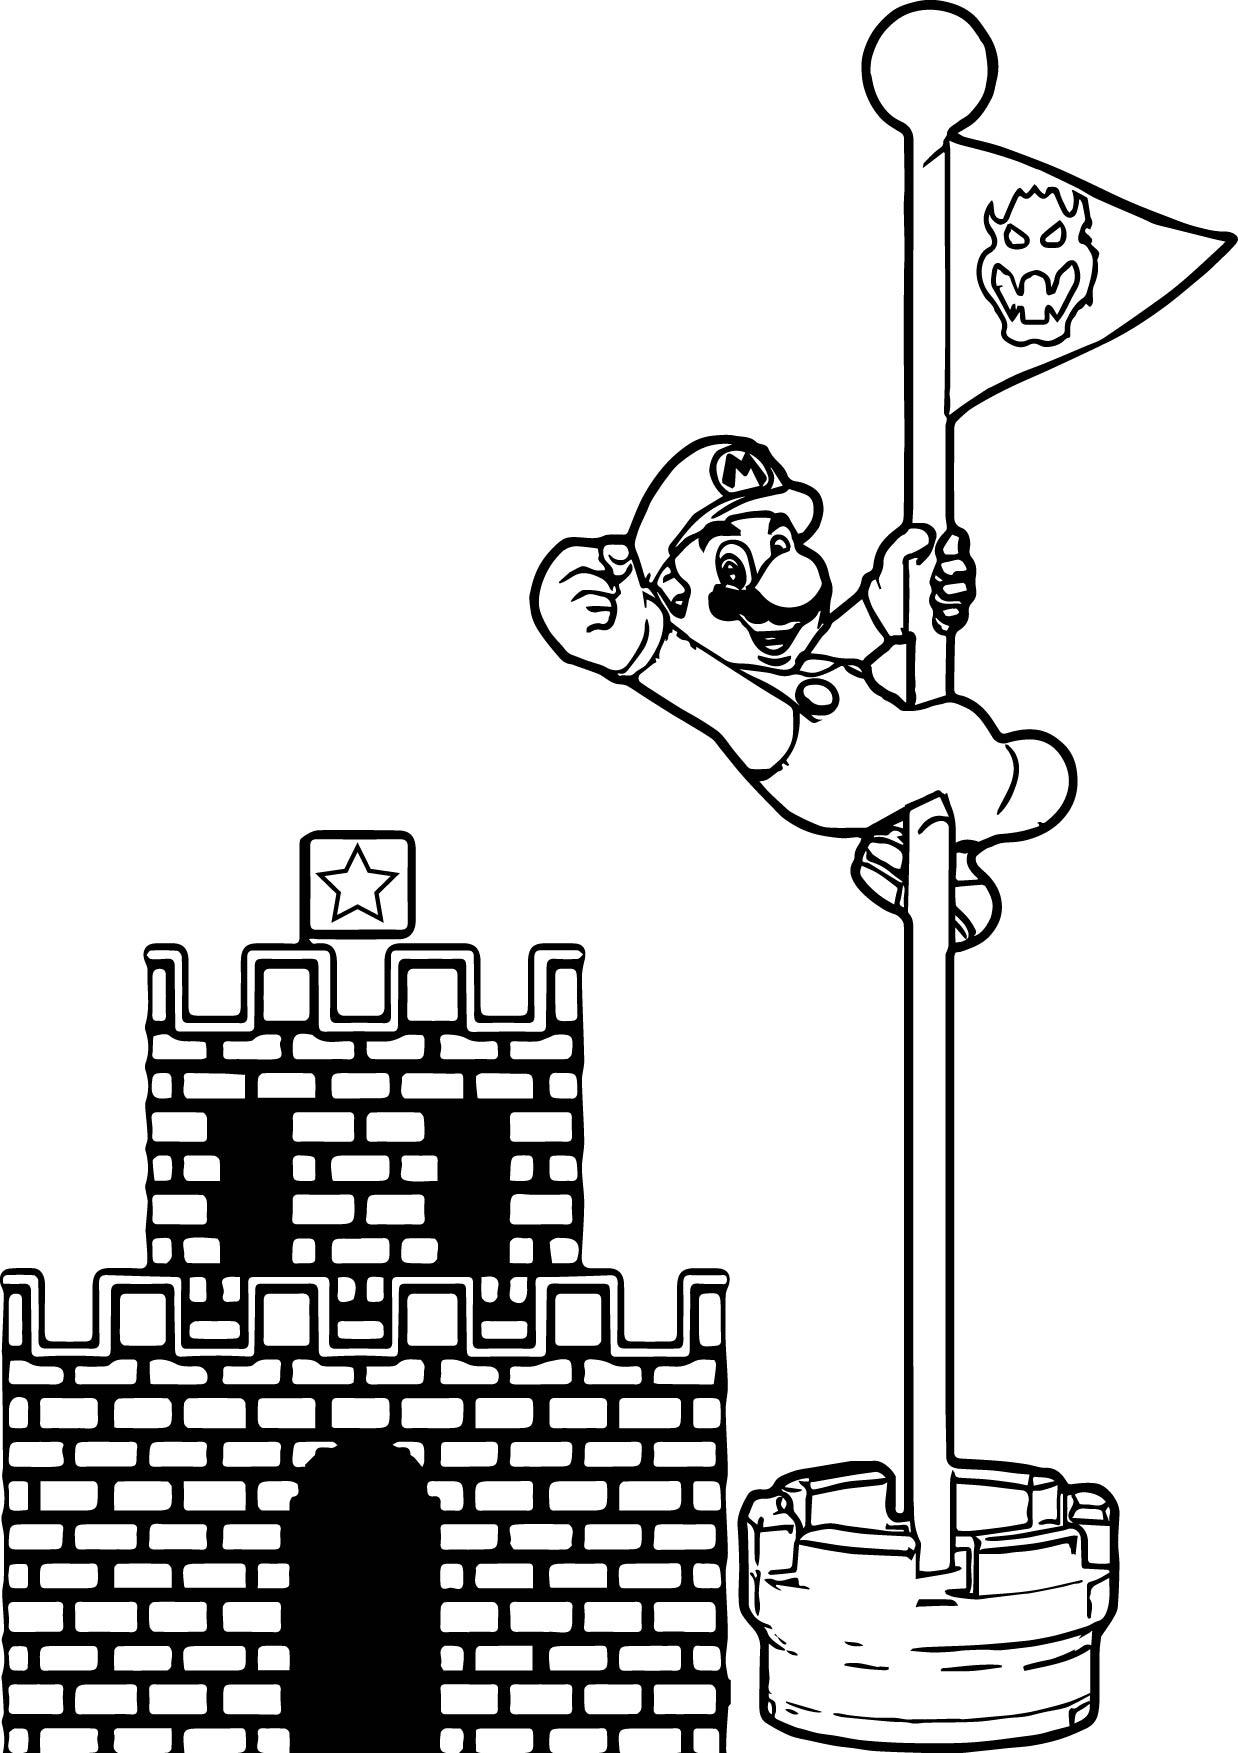 flag coloring pages - super mario castle pole coloring page